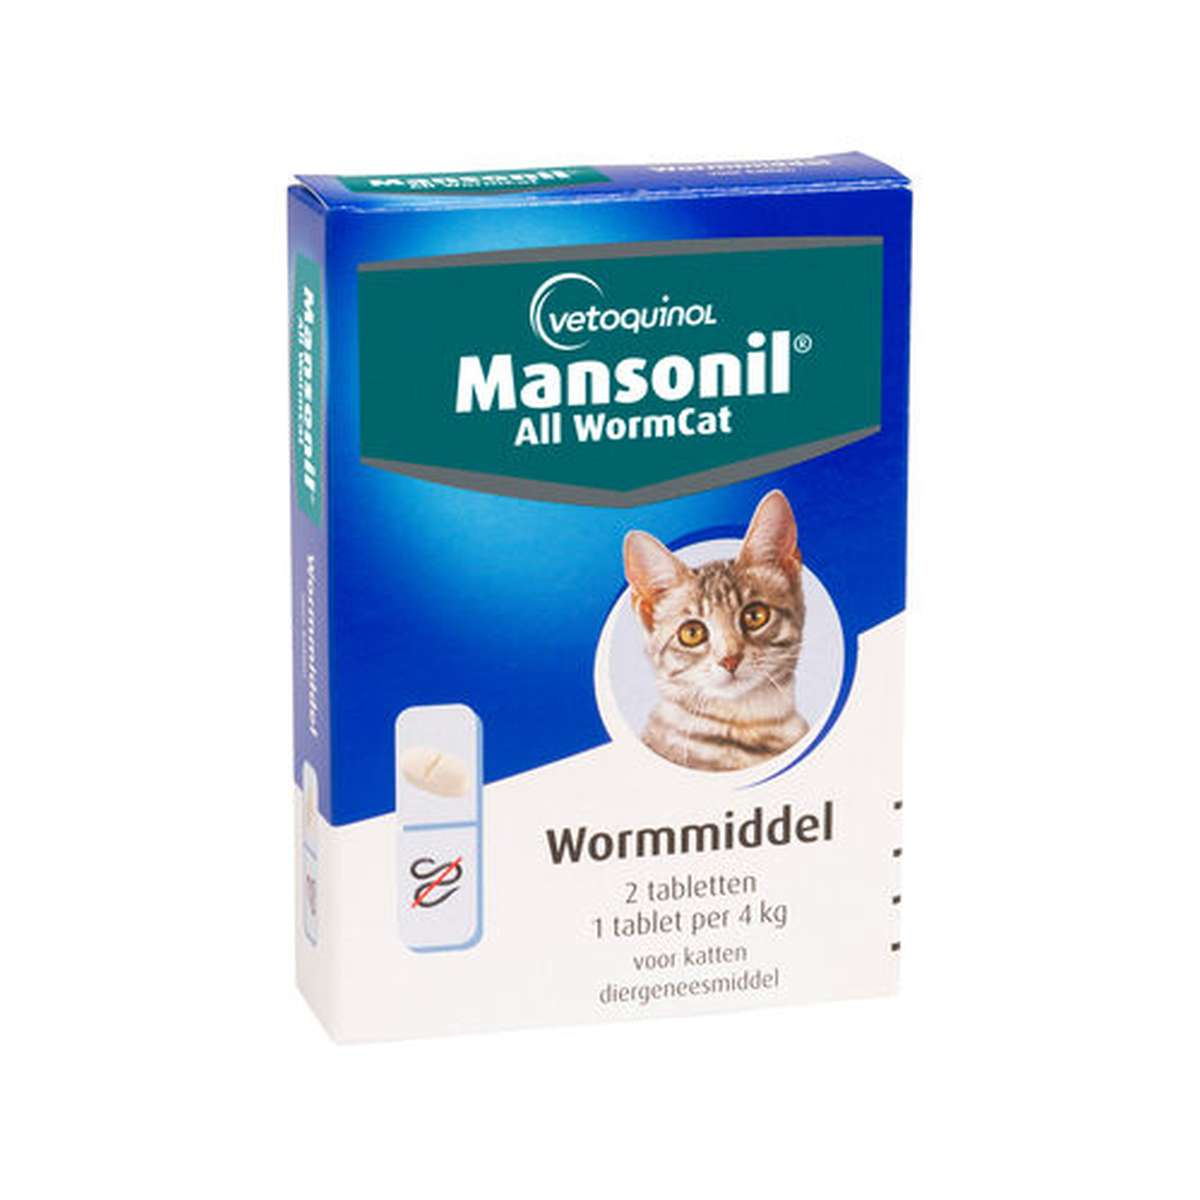 BA MANSONIL ALL WORM CAT 2T 00001